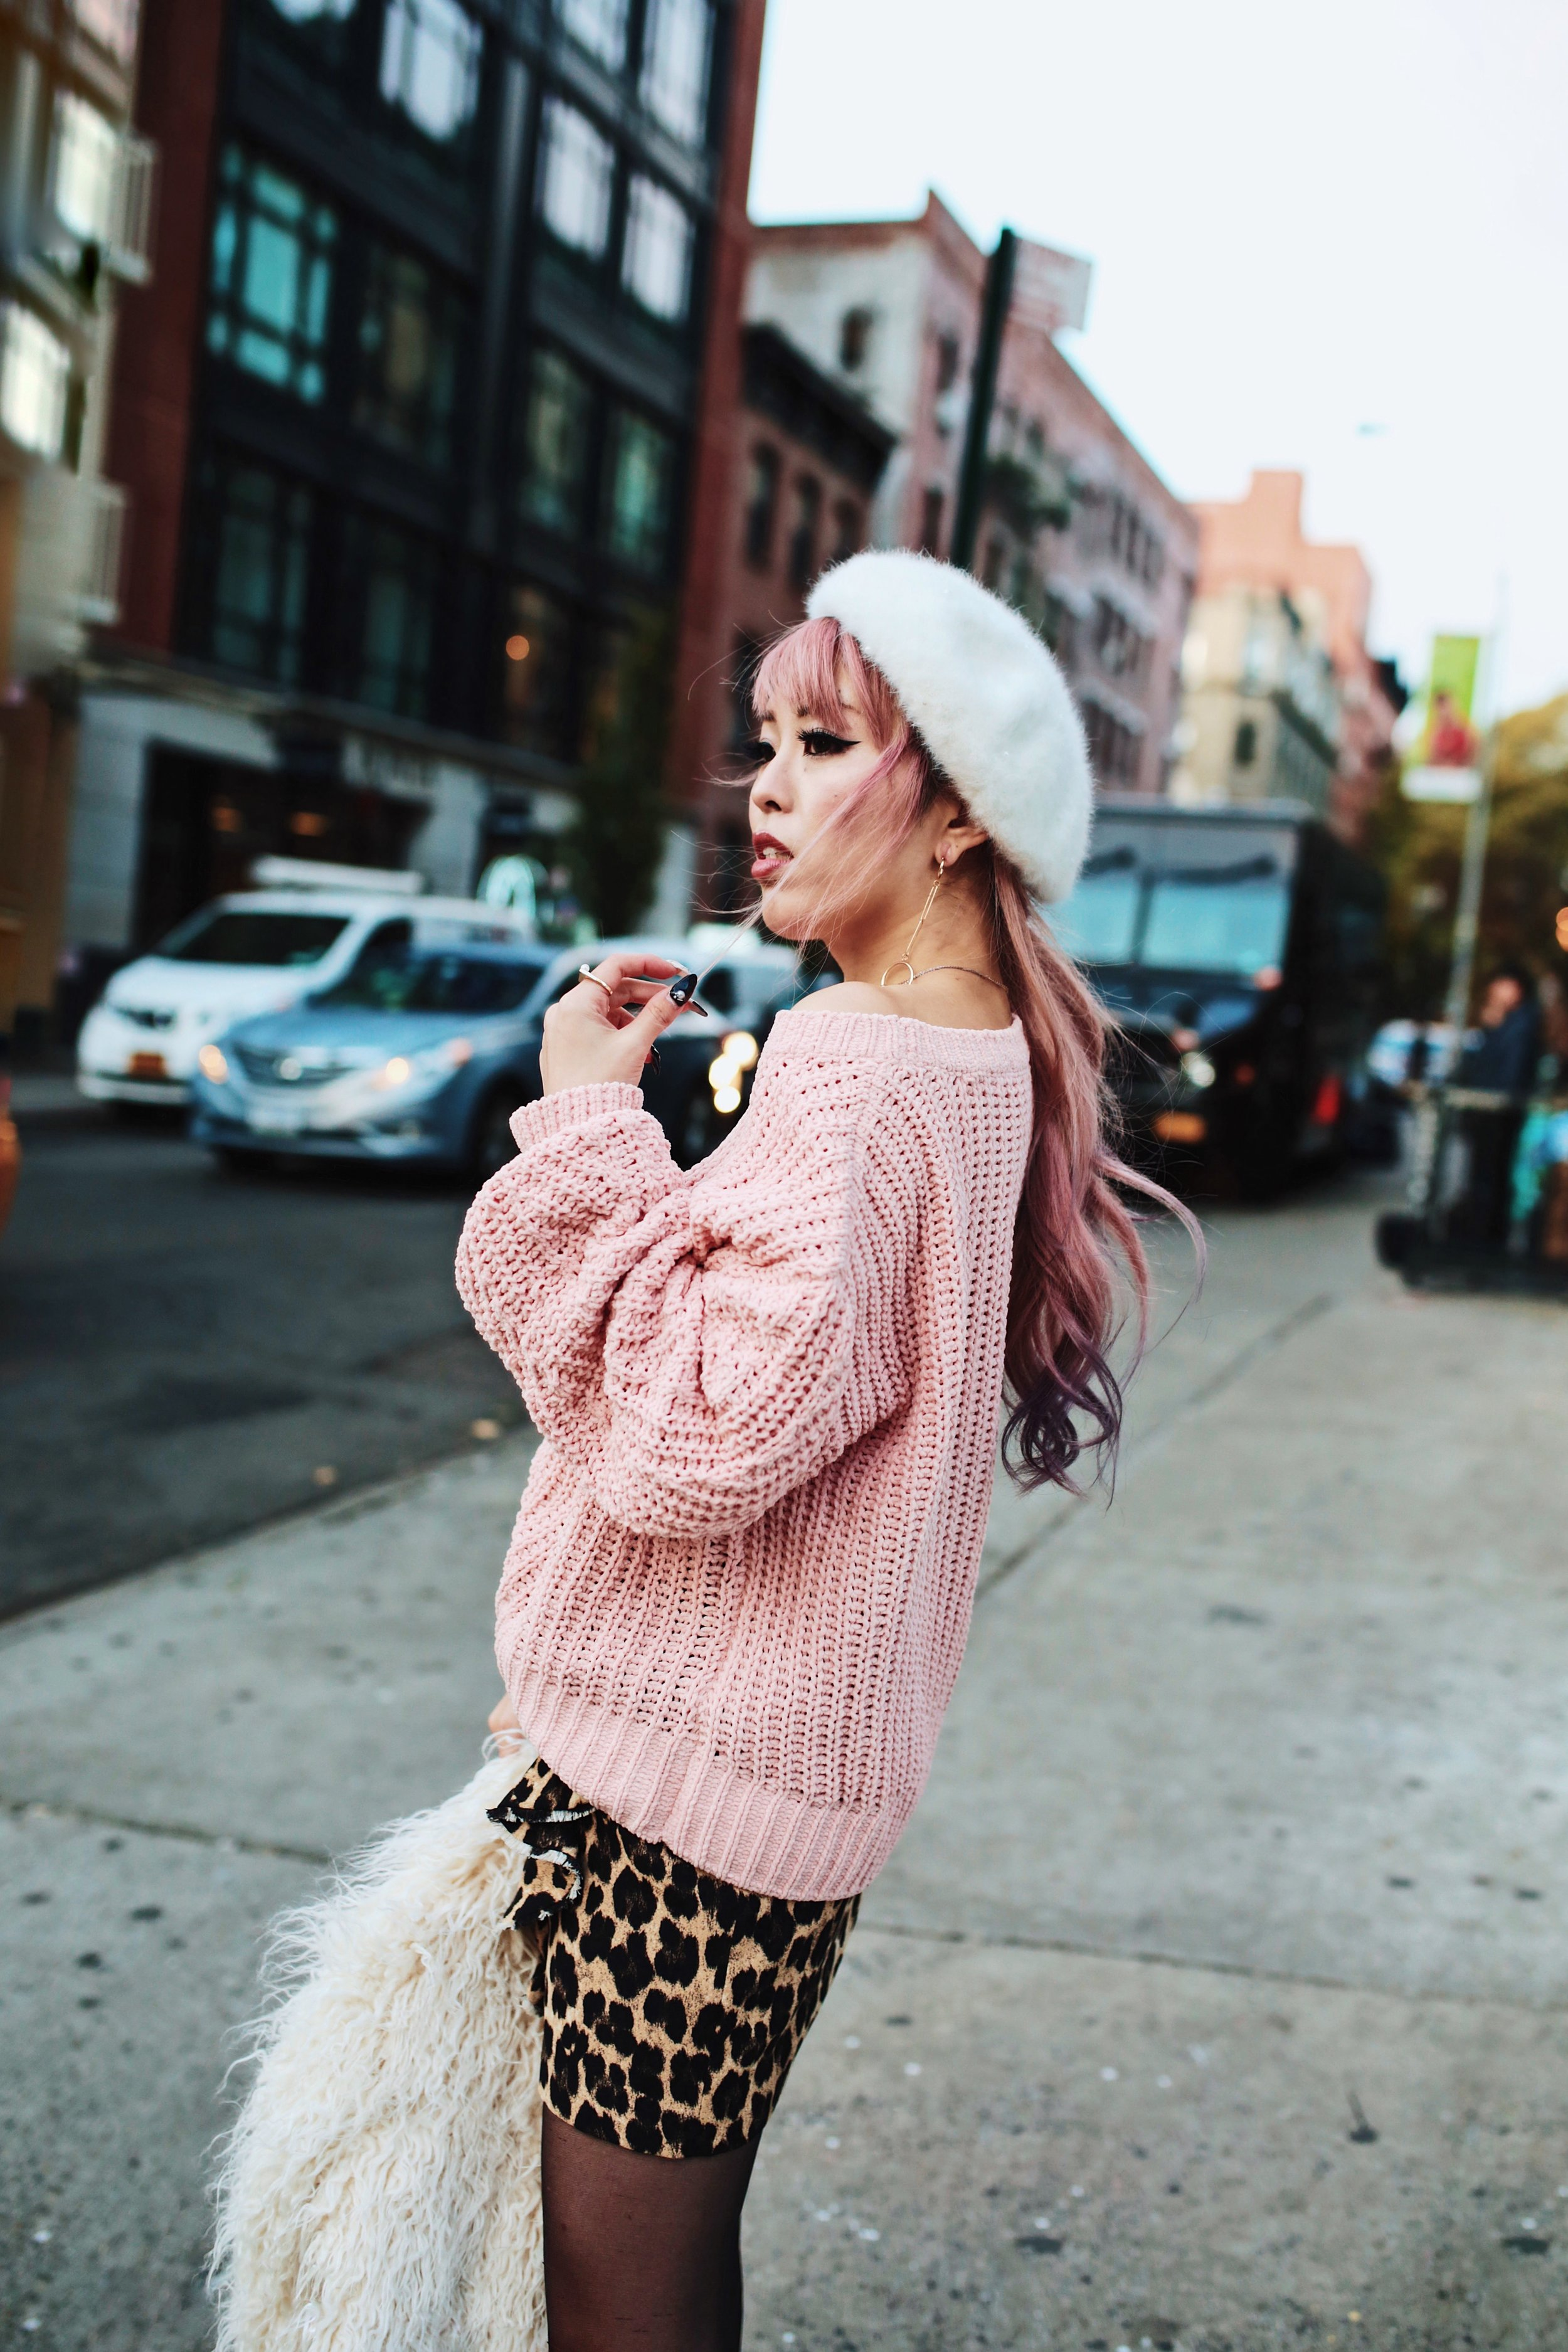 H&M Pink Sweater-Zara leopar prins mini skirt-H&M white shaggy coat-DVF fur bag-anthropologie white beret-Urban Outfitters Sunglasses-ALDO Ankle Boots-Mango Earrings-Aikas Love Closet-New York City-Pink Hair-Style Fashion Blogger-Seattle-Japanese_Petite fashion blogger 12